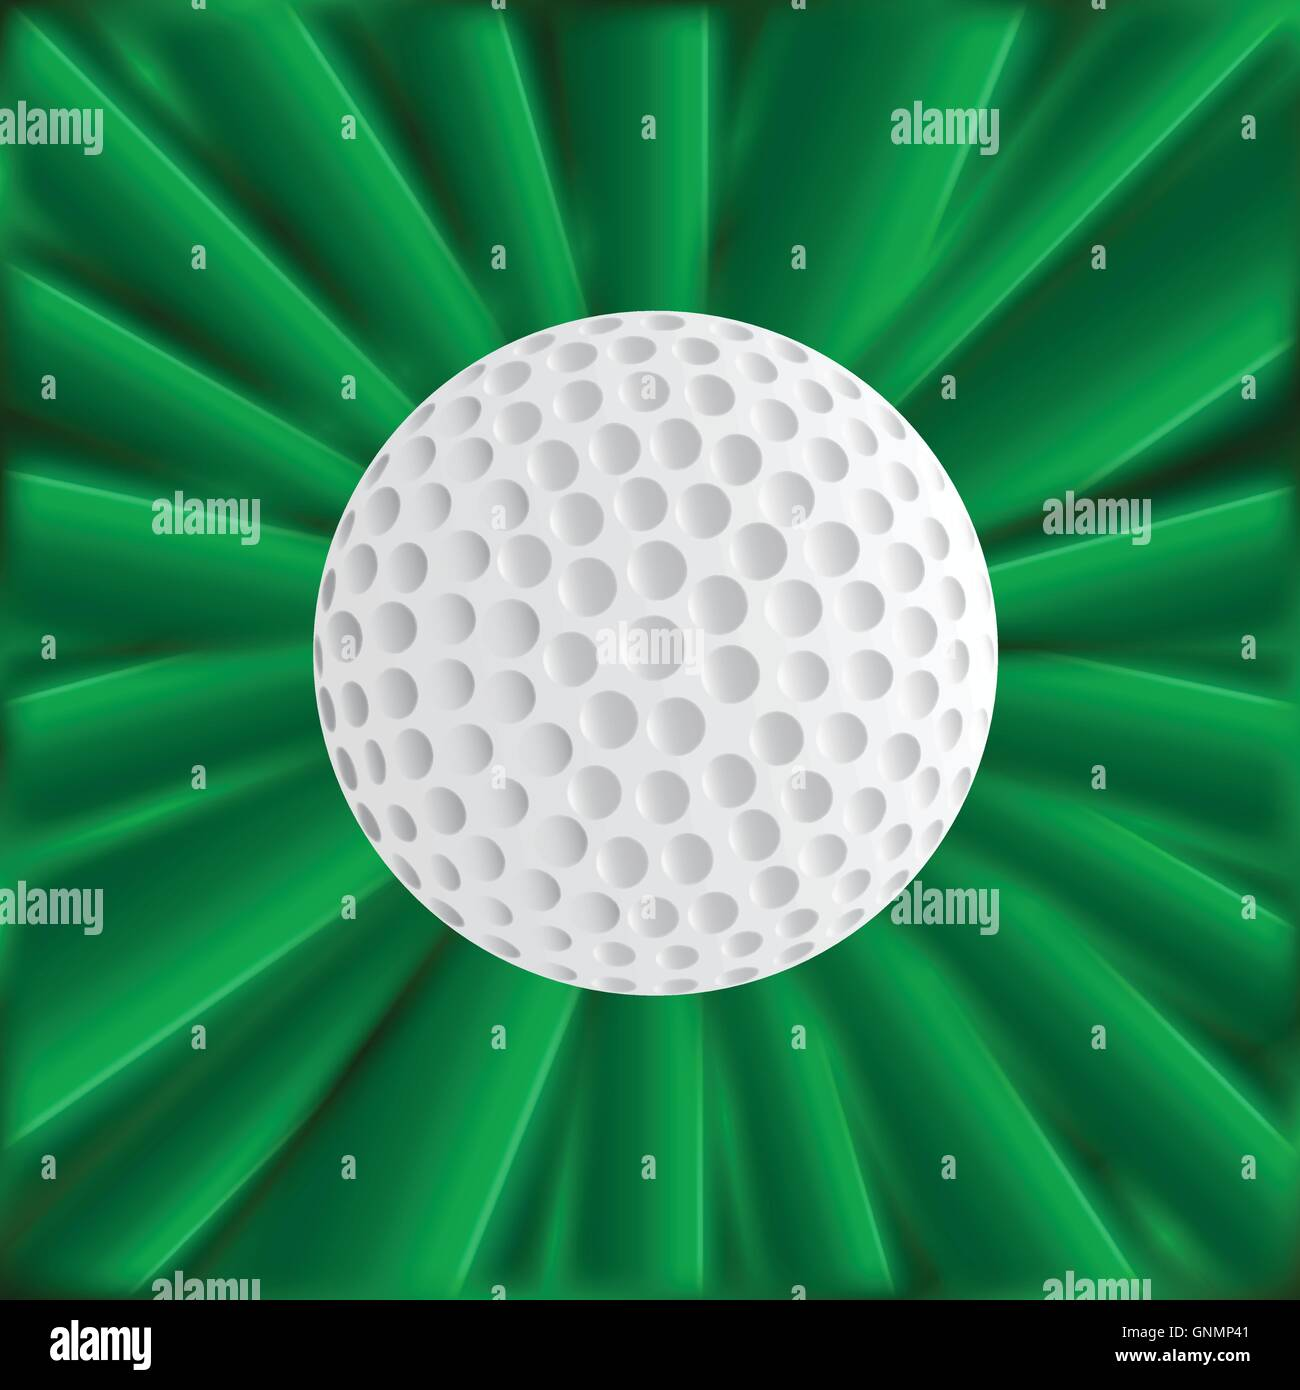 Golf Ball Over Green - Stock Image